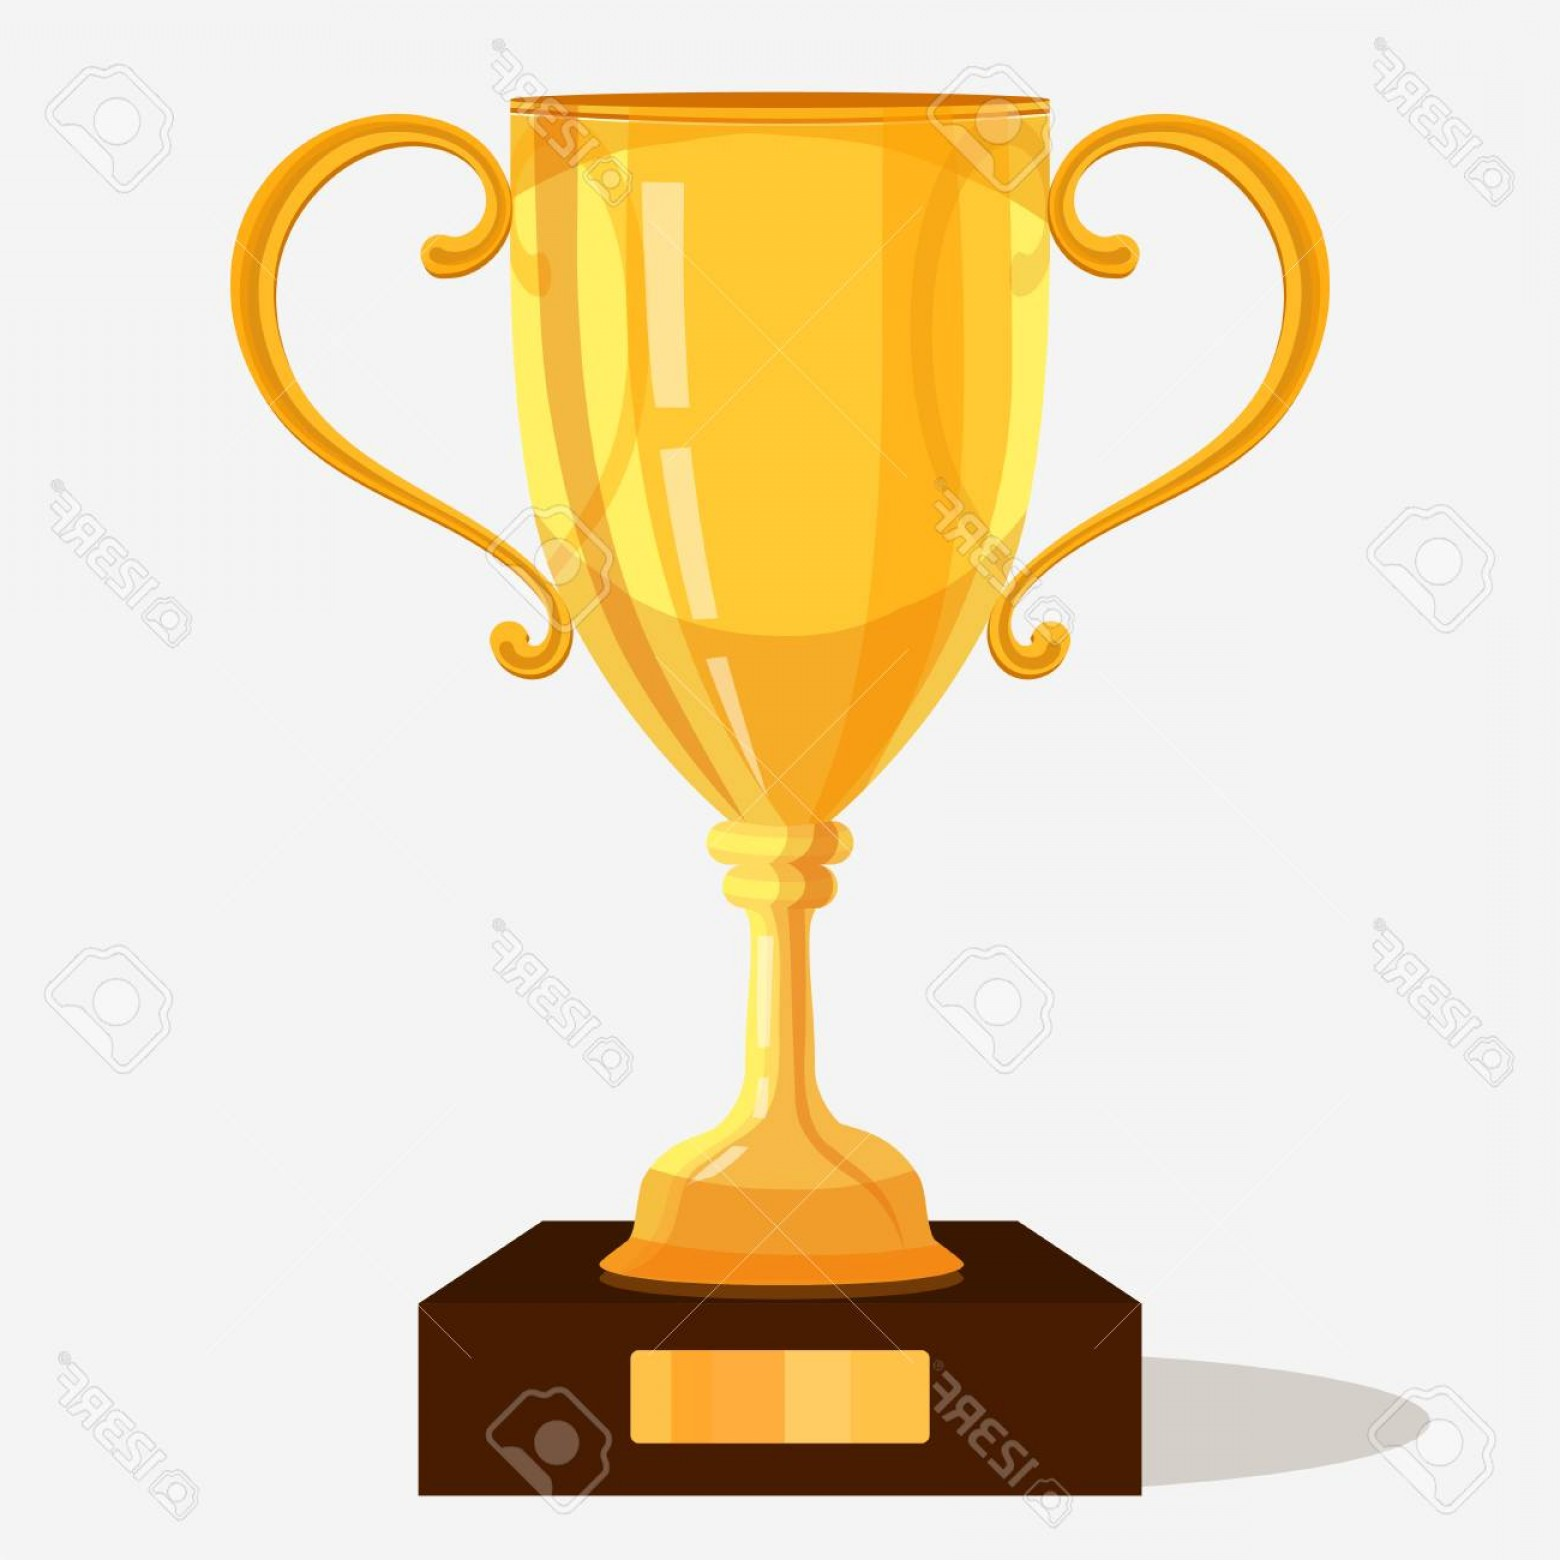 Gold Trophy Vector: Photostock Vector Gold Trophy Cup Shiny Isometric Illustration Of Golden Winner Trophy Vector